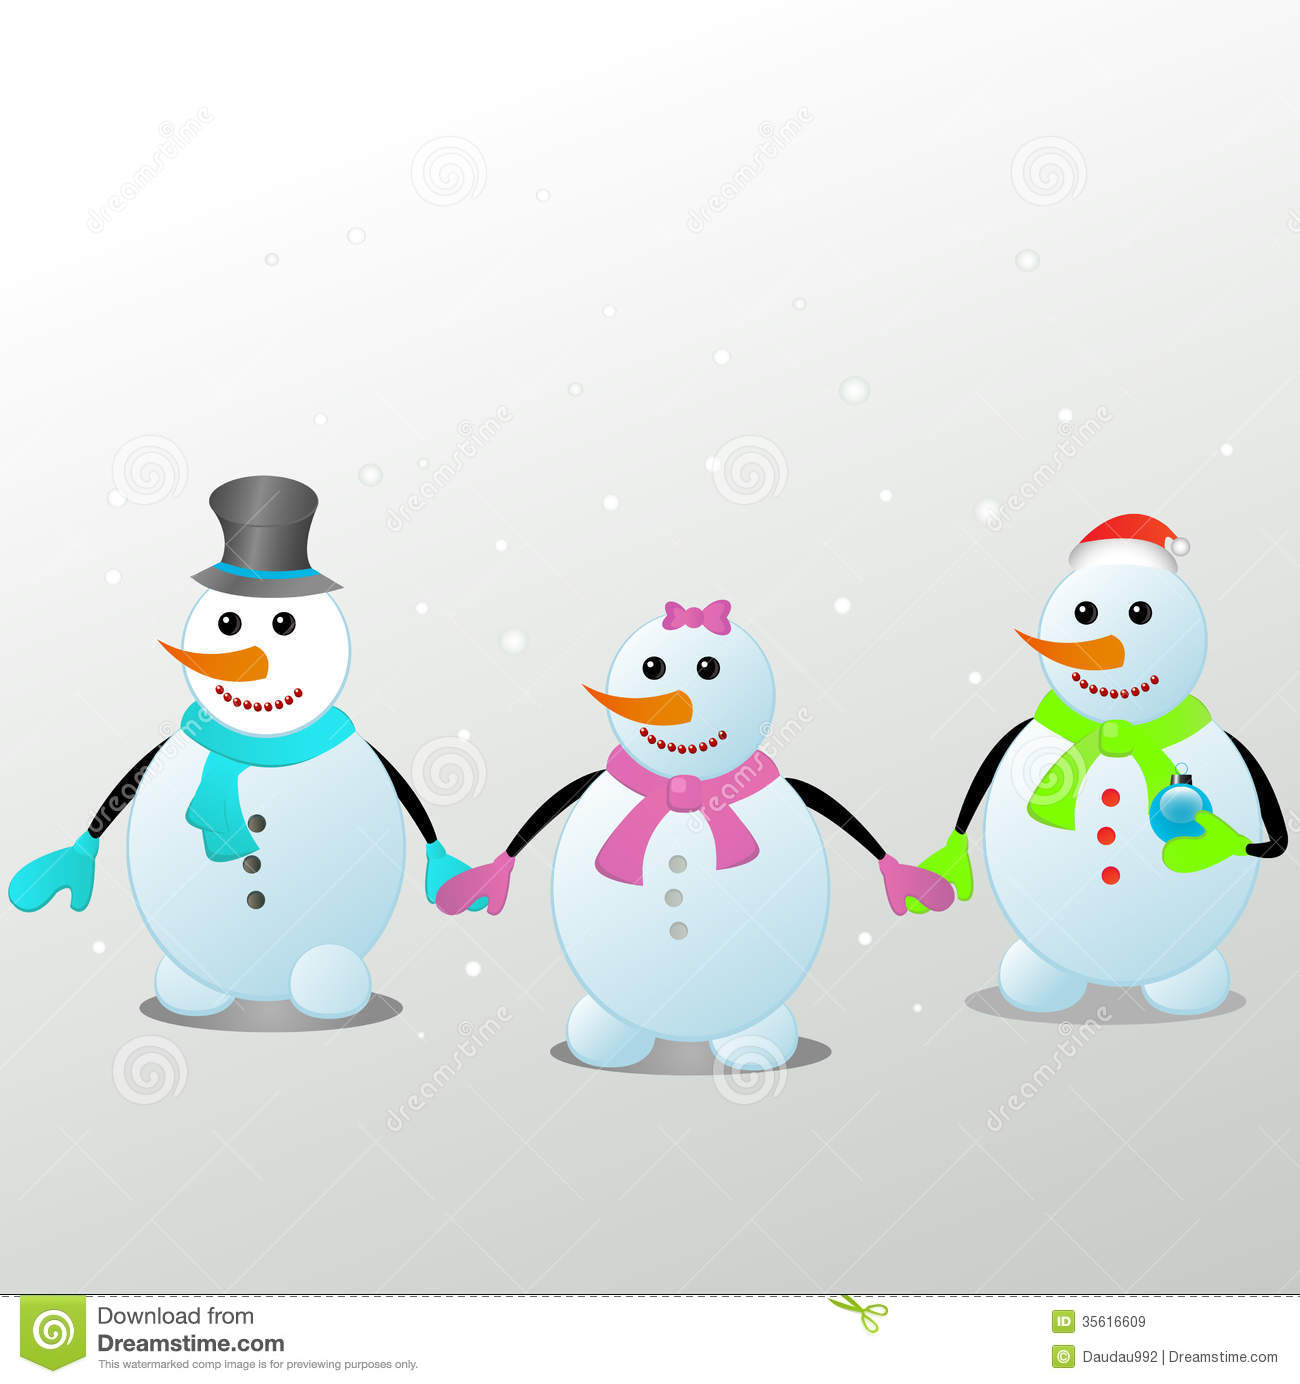 snowman family wallpaper - photo #27